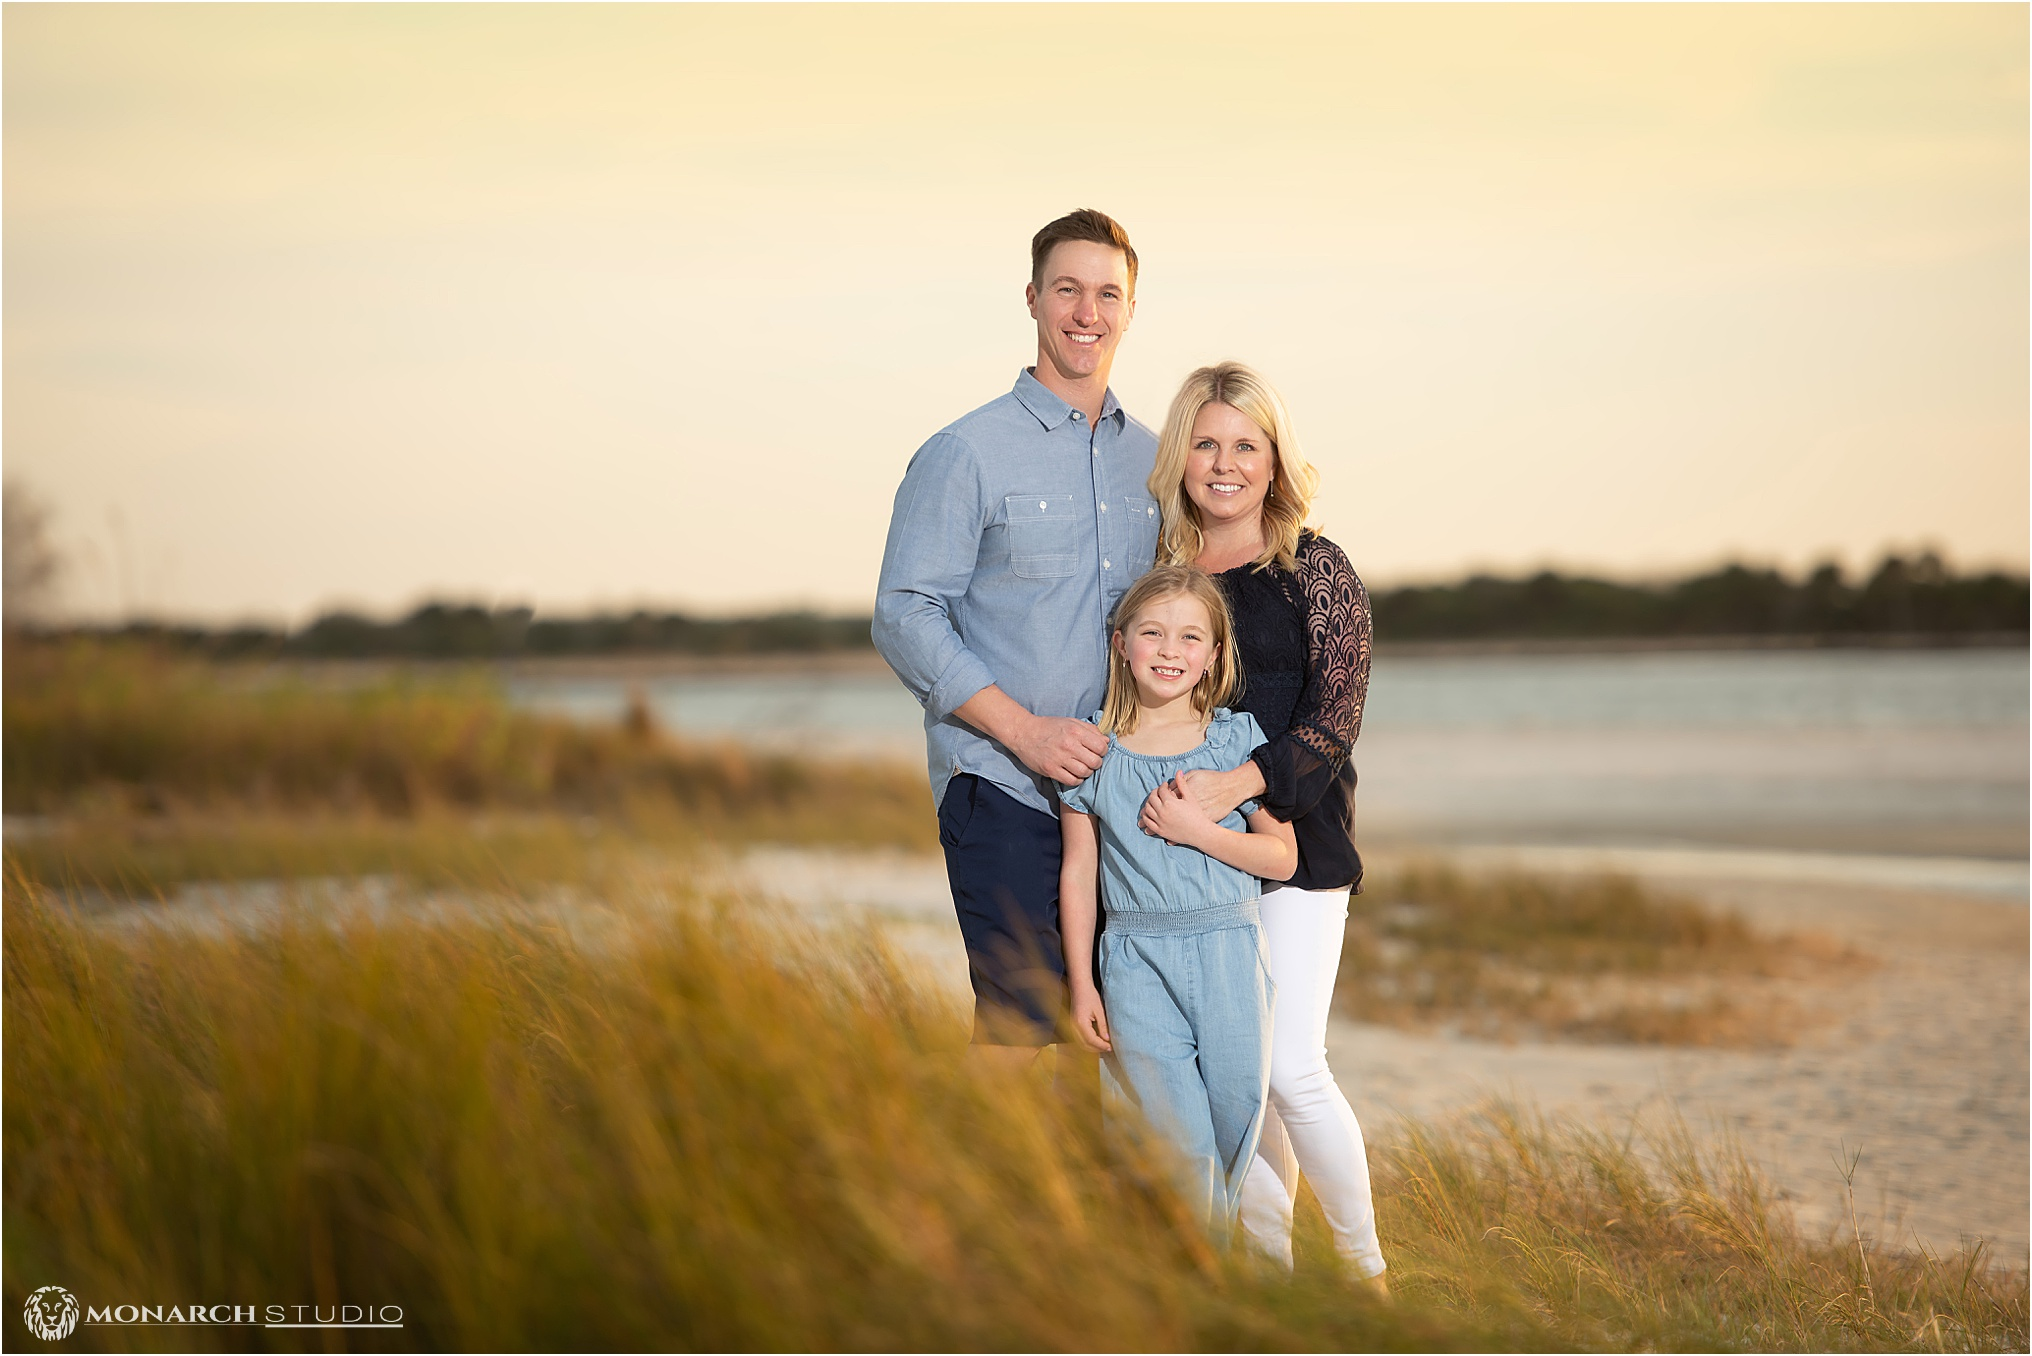 family-portraits-on-st-augustine-beach-003.jpg